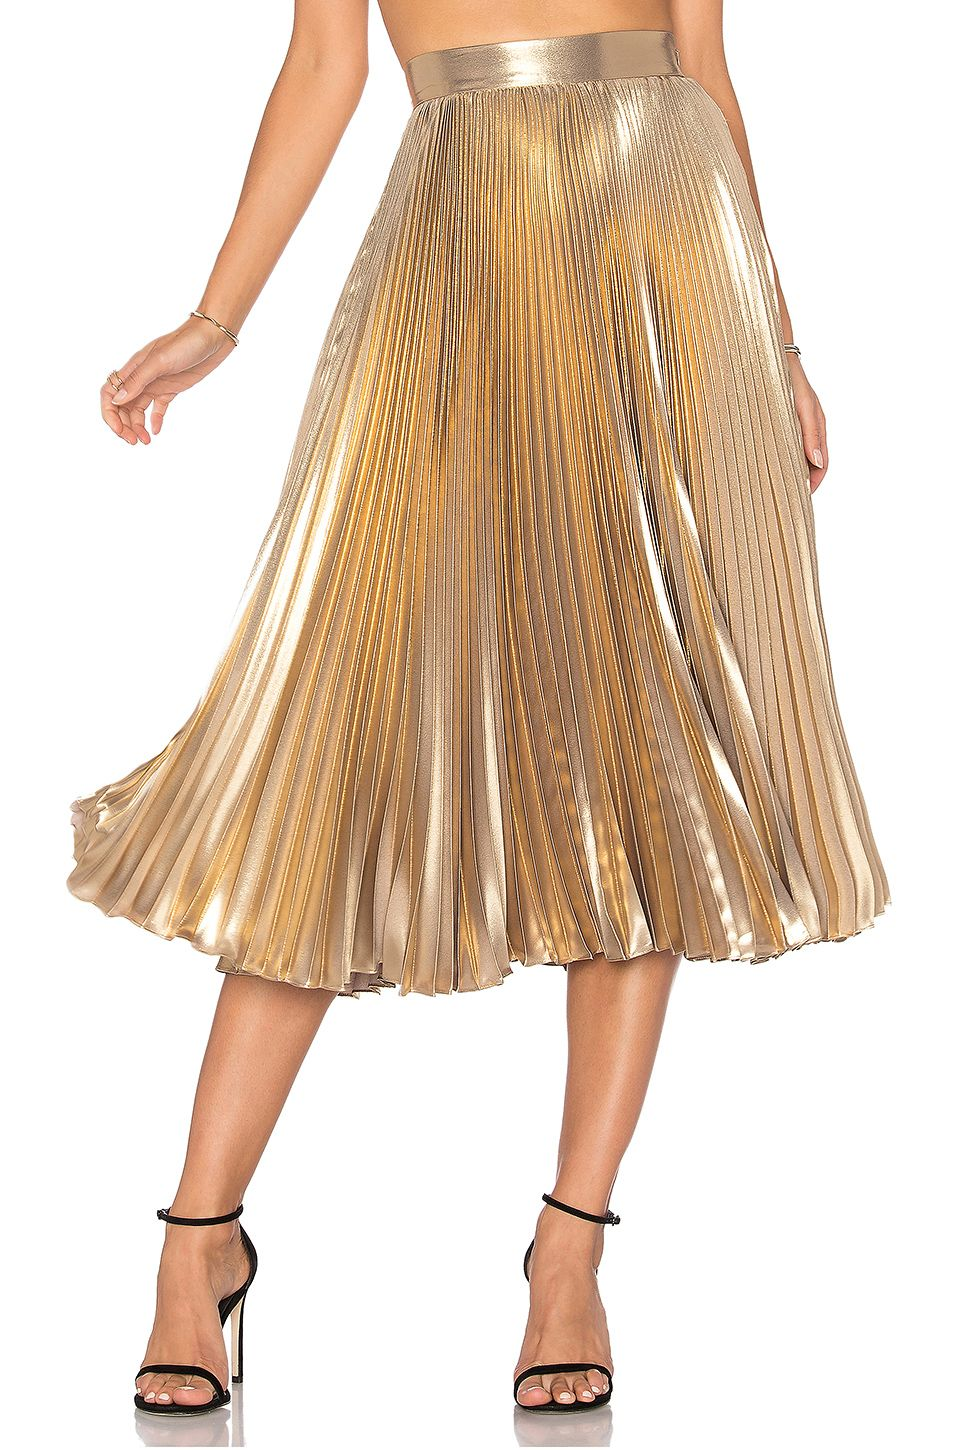 843c1d80f0 Frankie Pleated Skirt in Light Gold | dresses & skirts | Pleated ...